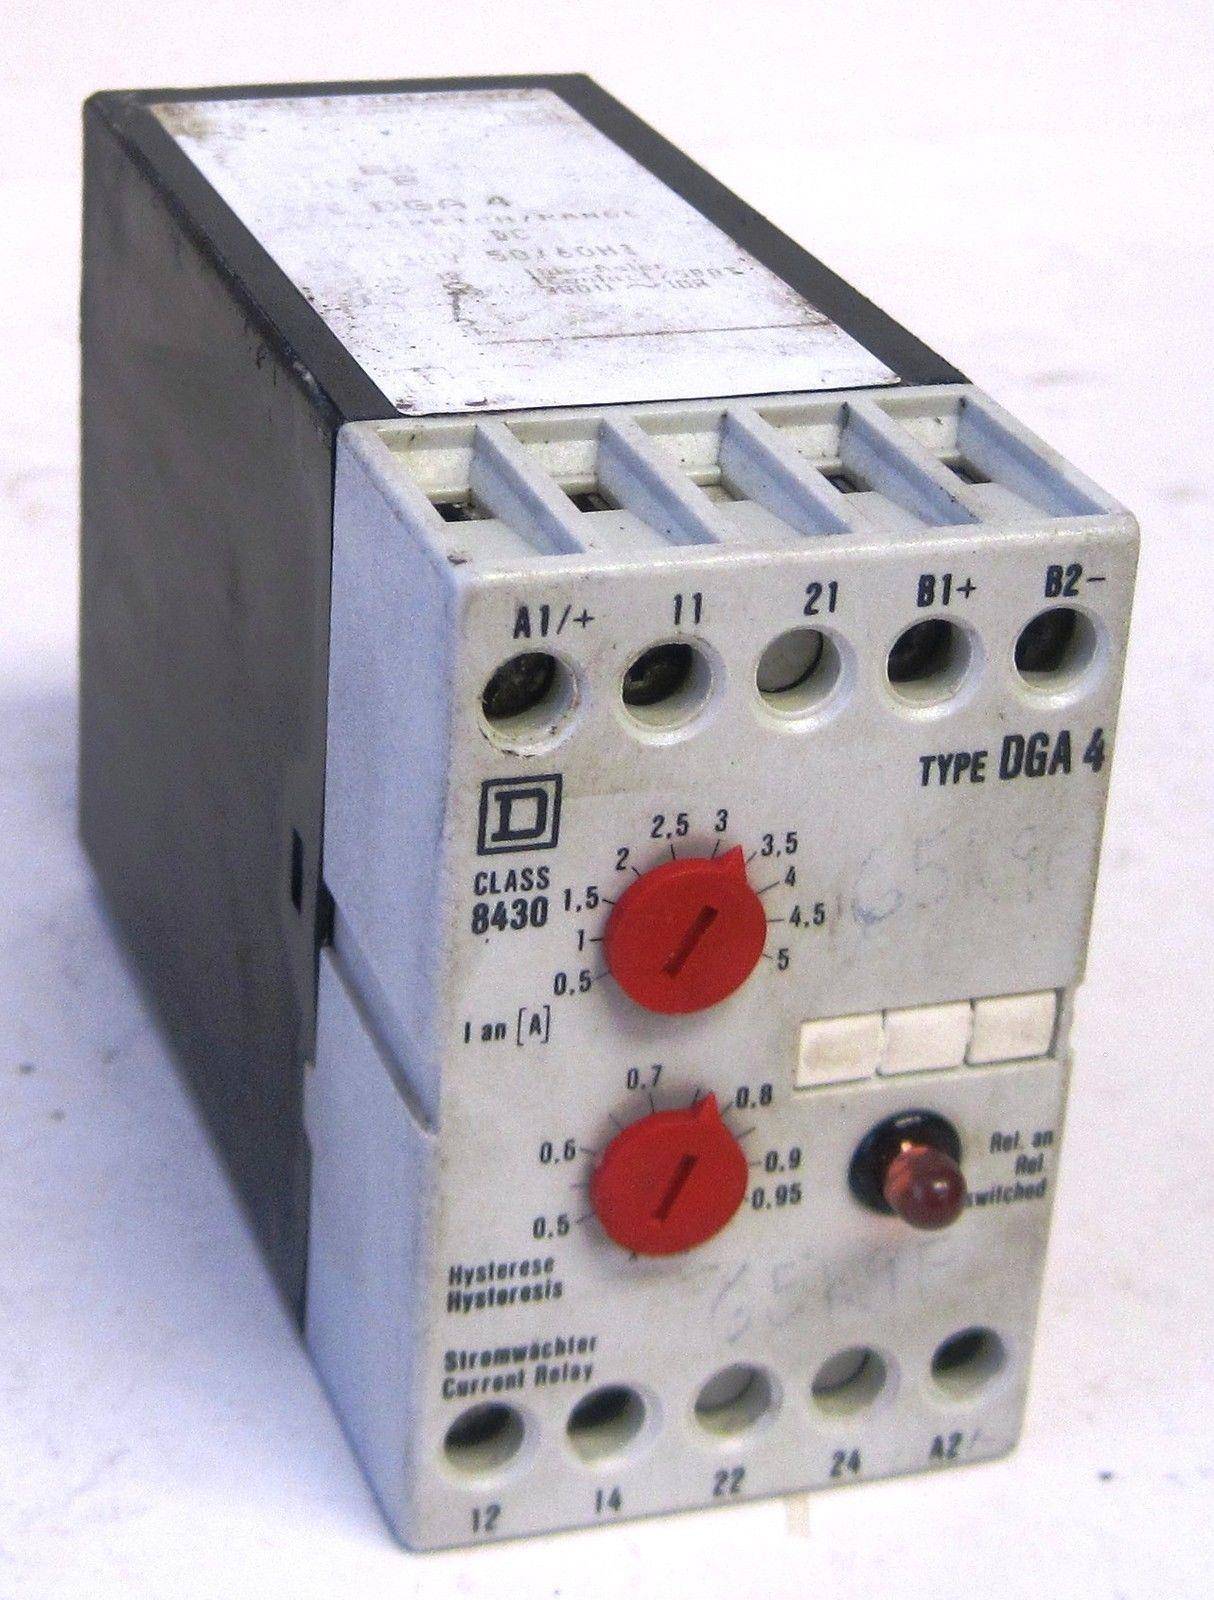 Square D 05 5a 110vac Dependent Current Relay 8430 Dga4 On Popscreen Sensing Hawkeye